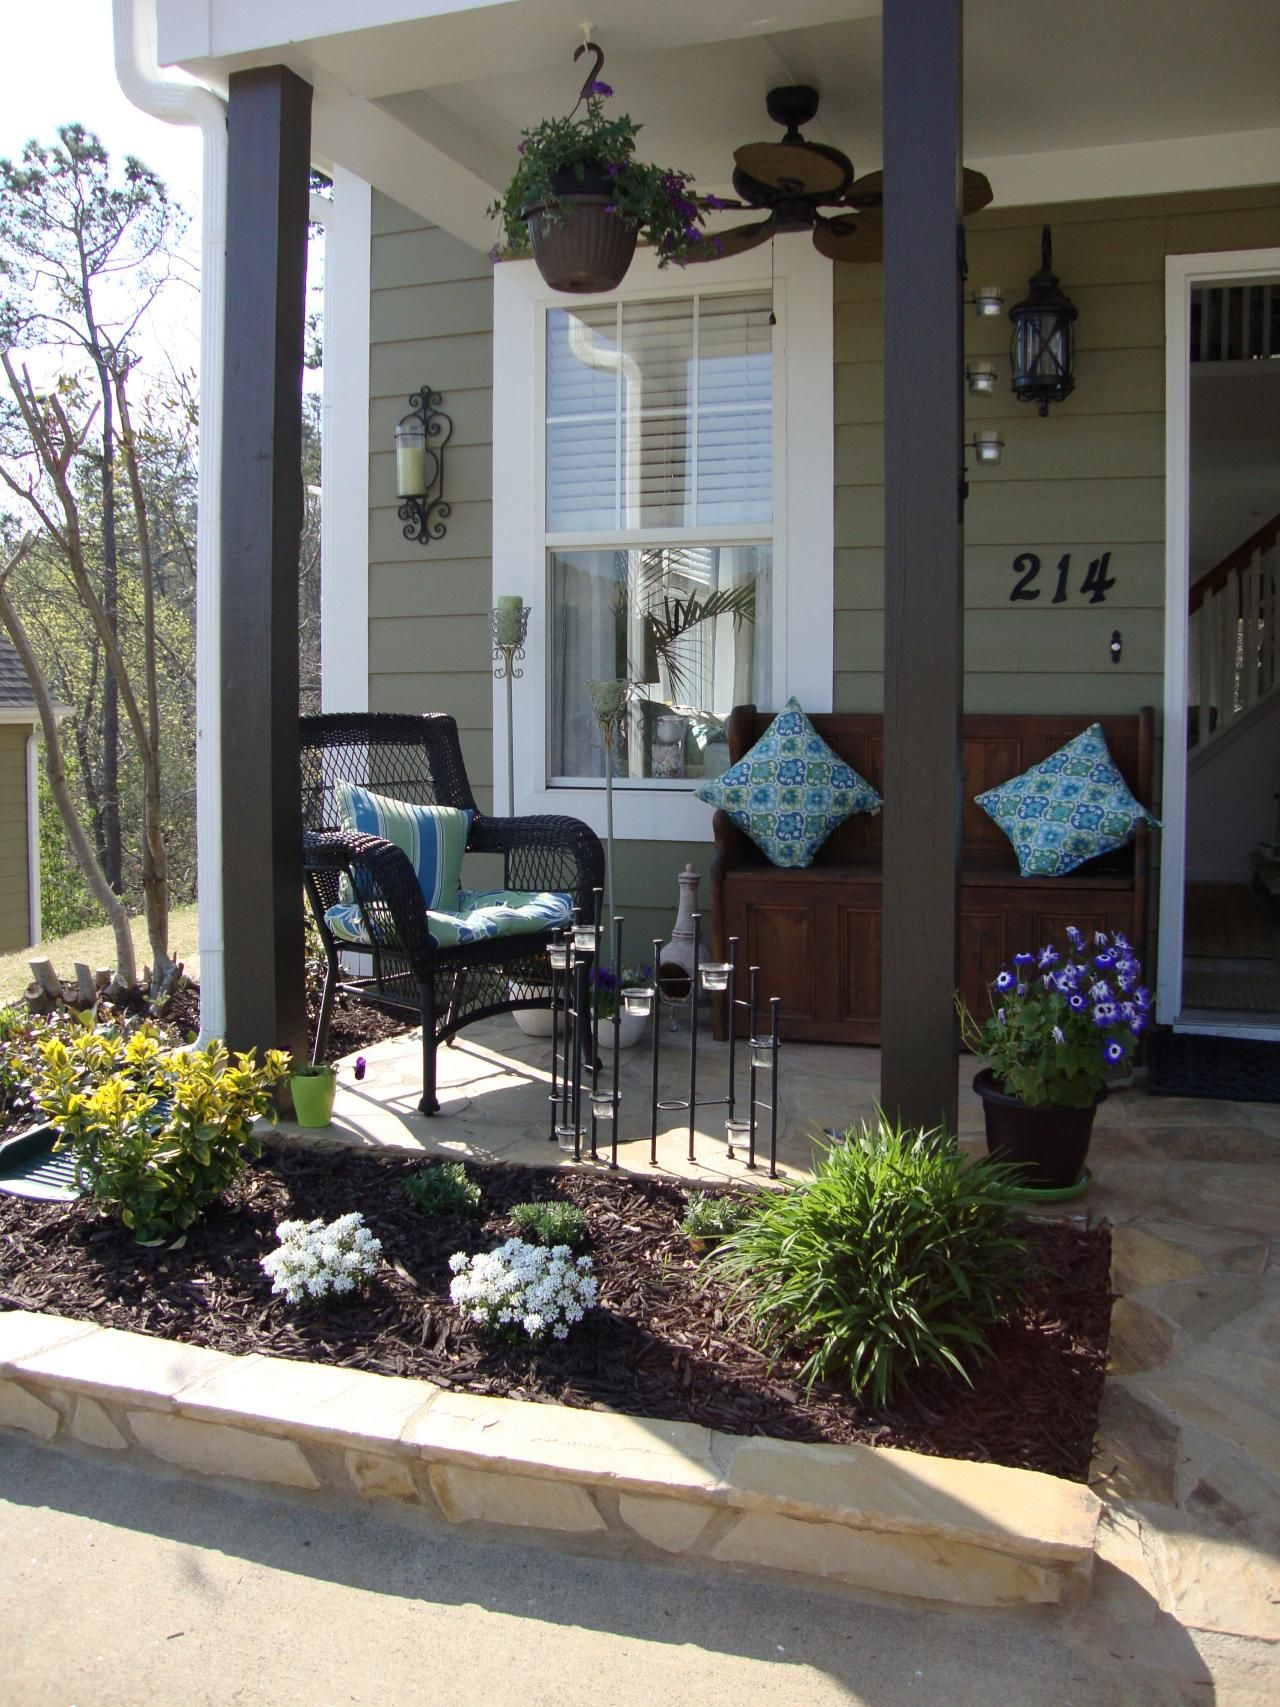 25 Eye Catching Entryways For Summer Small Front Porches Designs Front Porch Design Front Porch Furniture